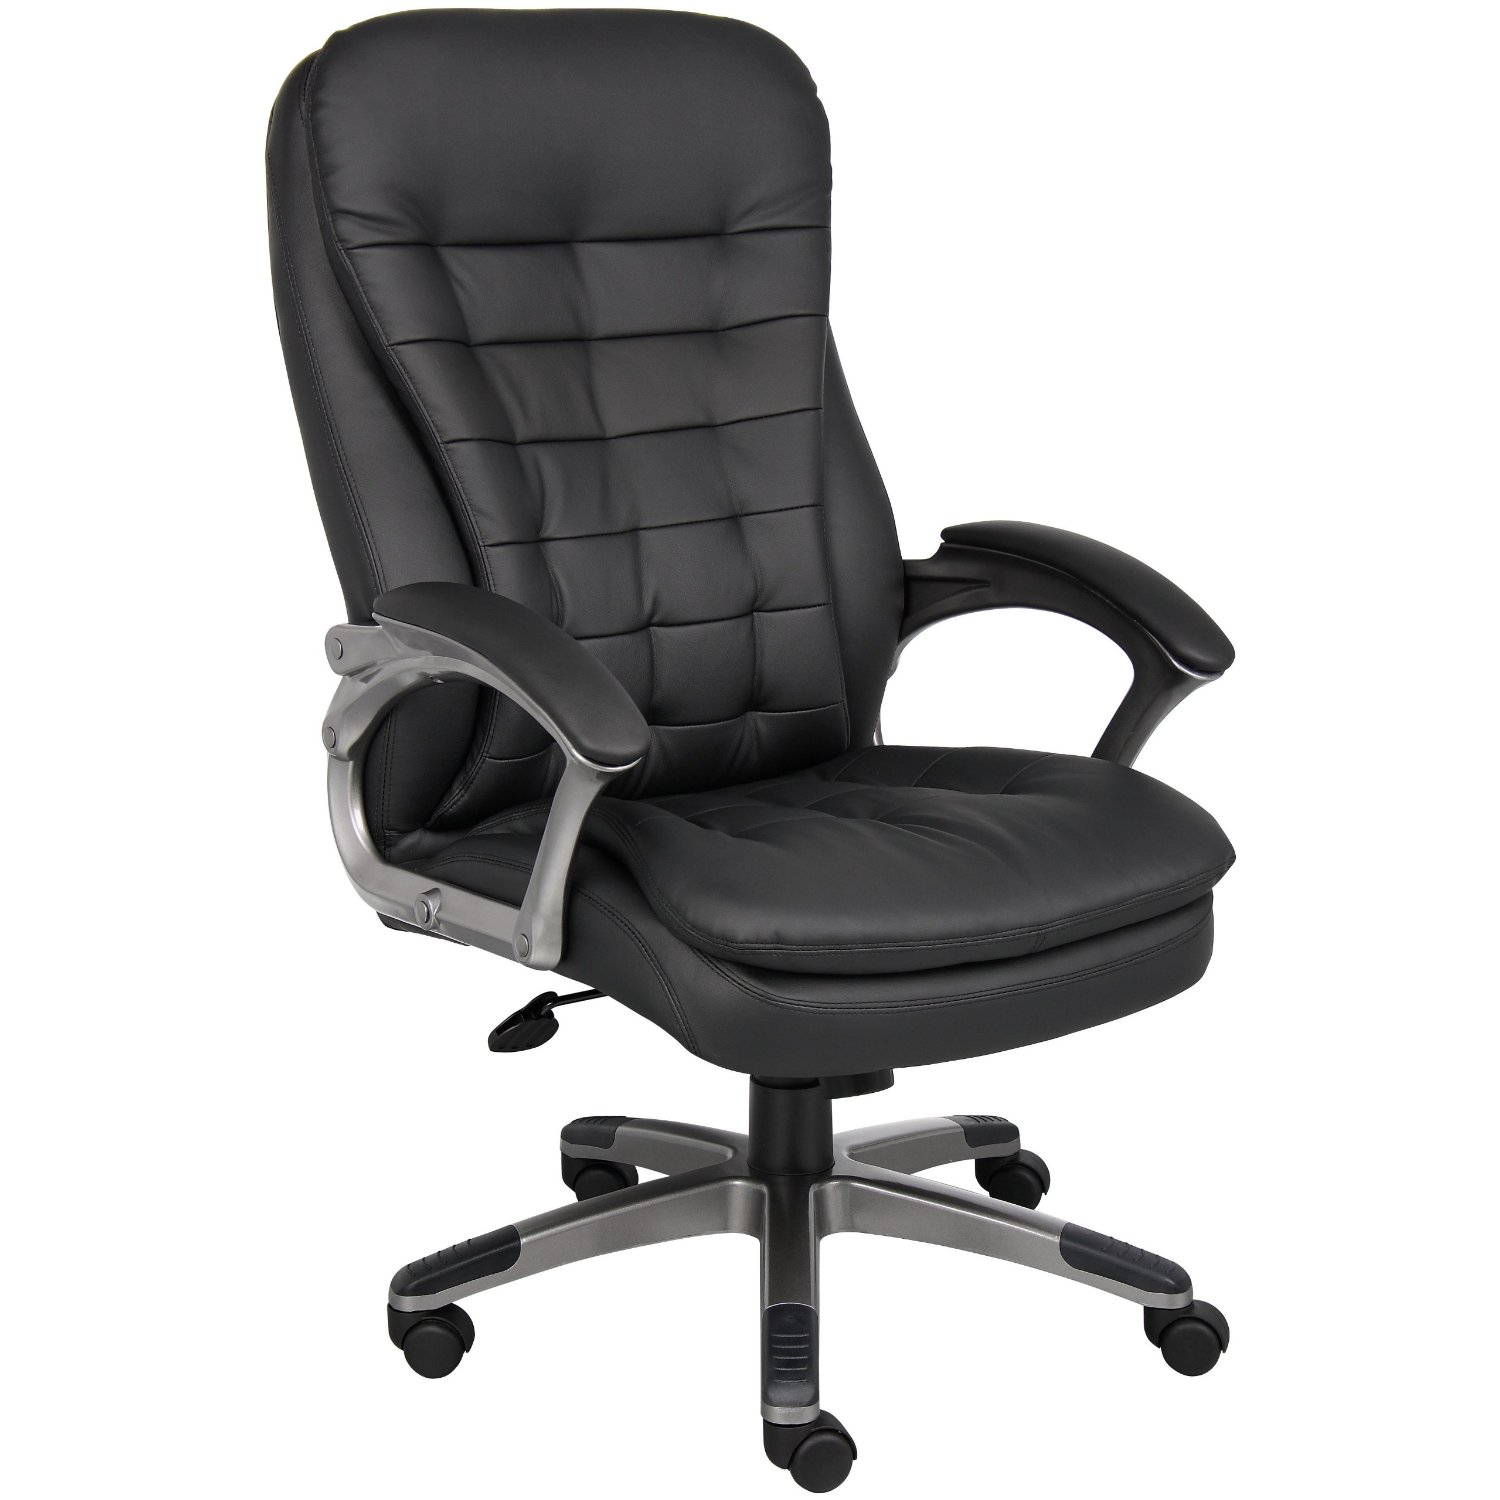 Executive Chairs 5 Best Executive Office Chairs Your Office Is Worth It